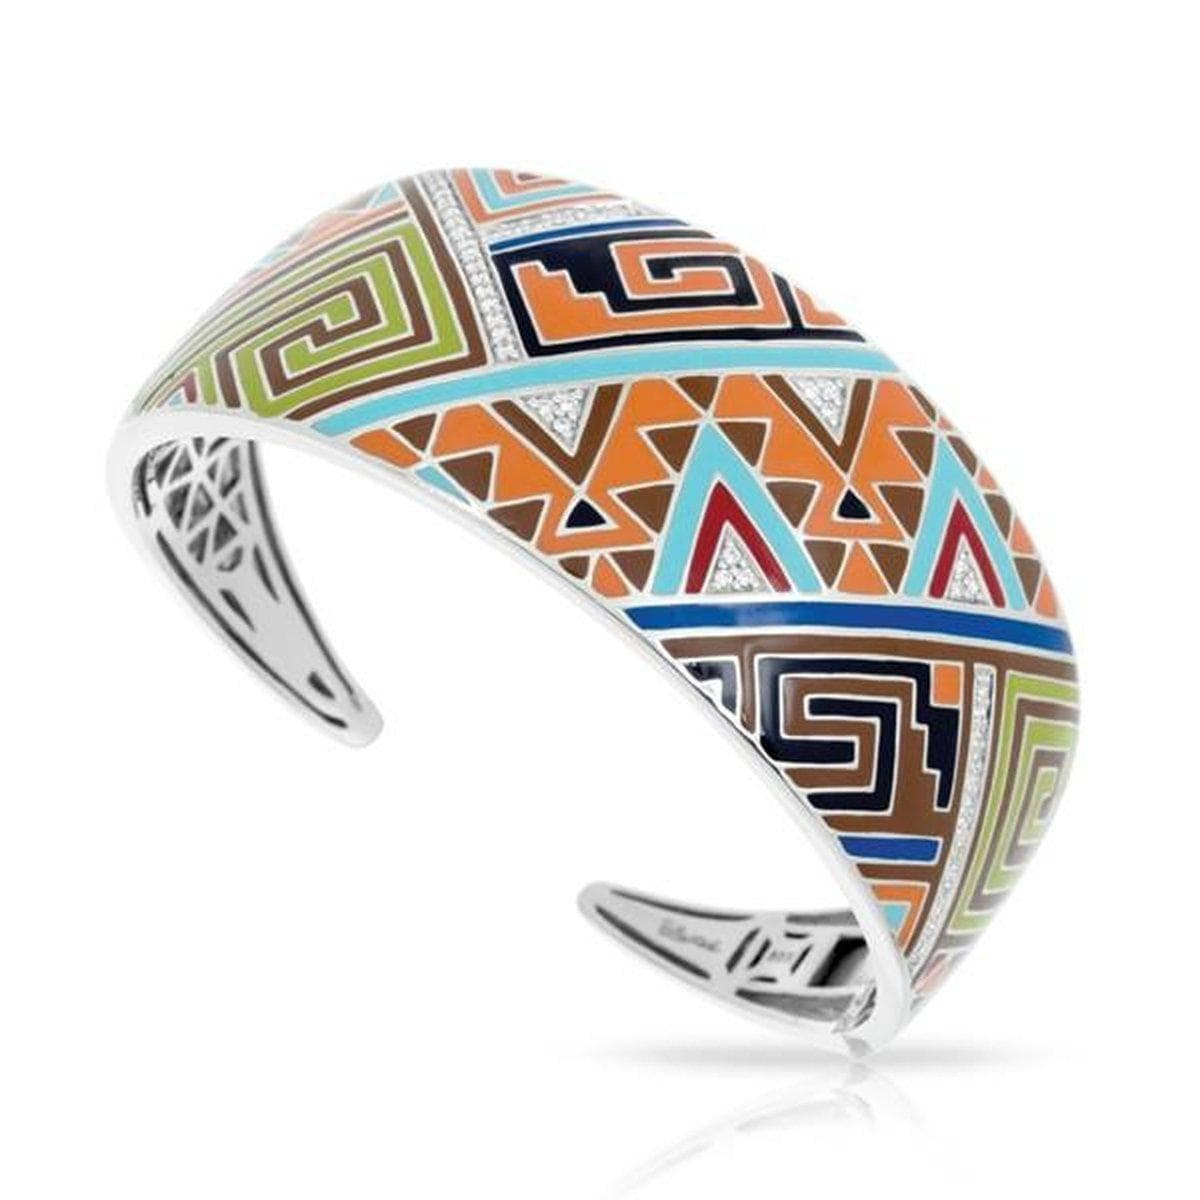 Sedona Orange Bangle-Belle Etoile-Renee Taylor Gallery